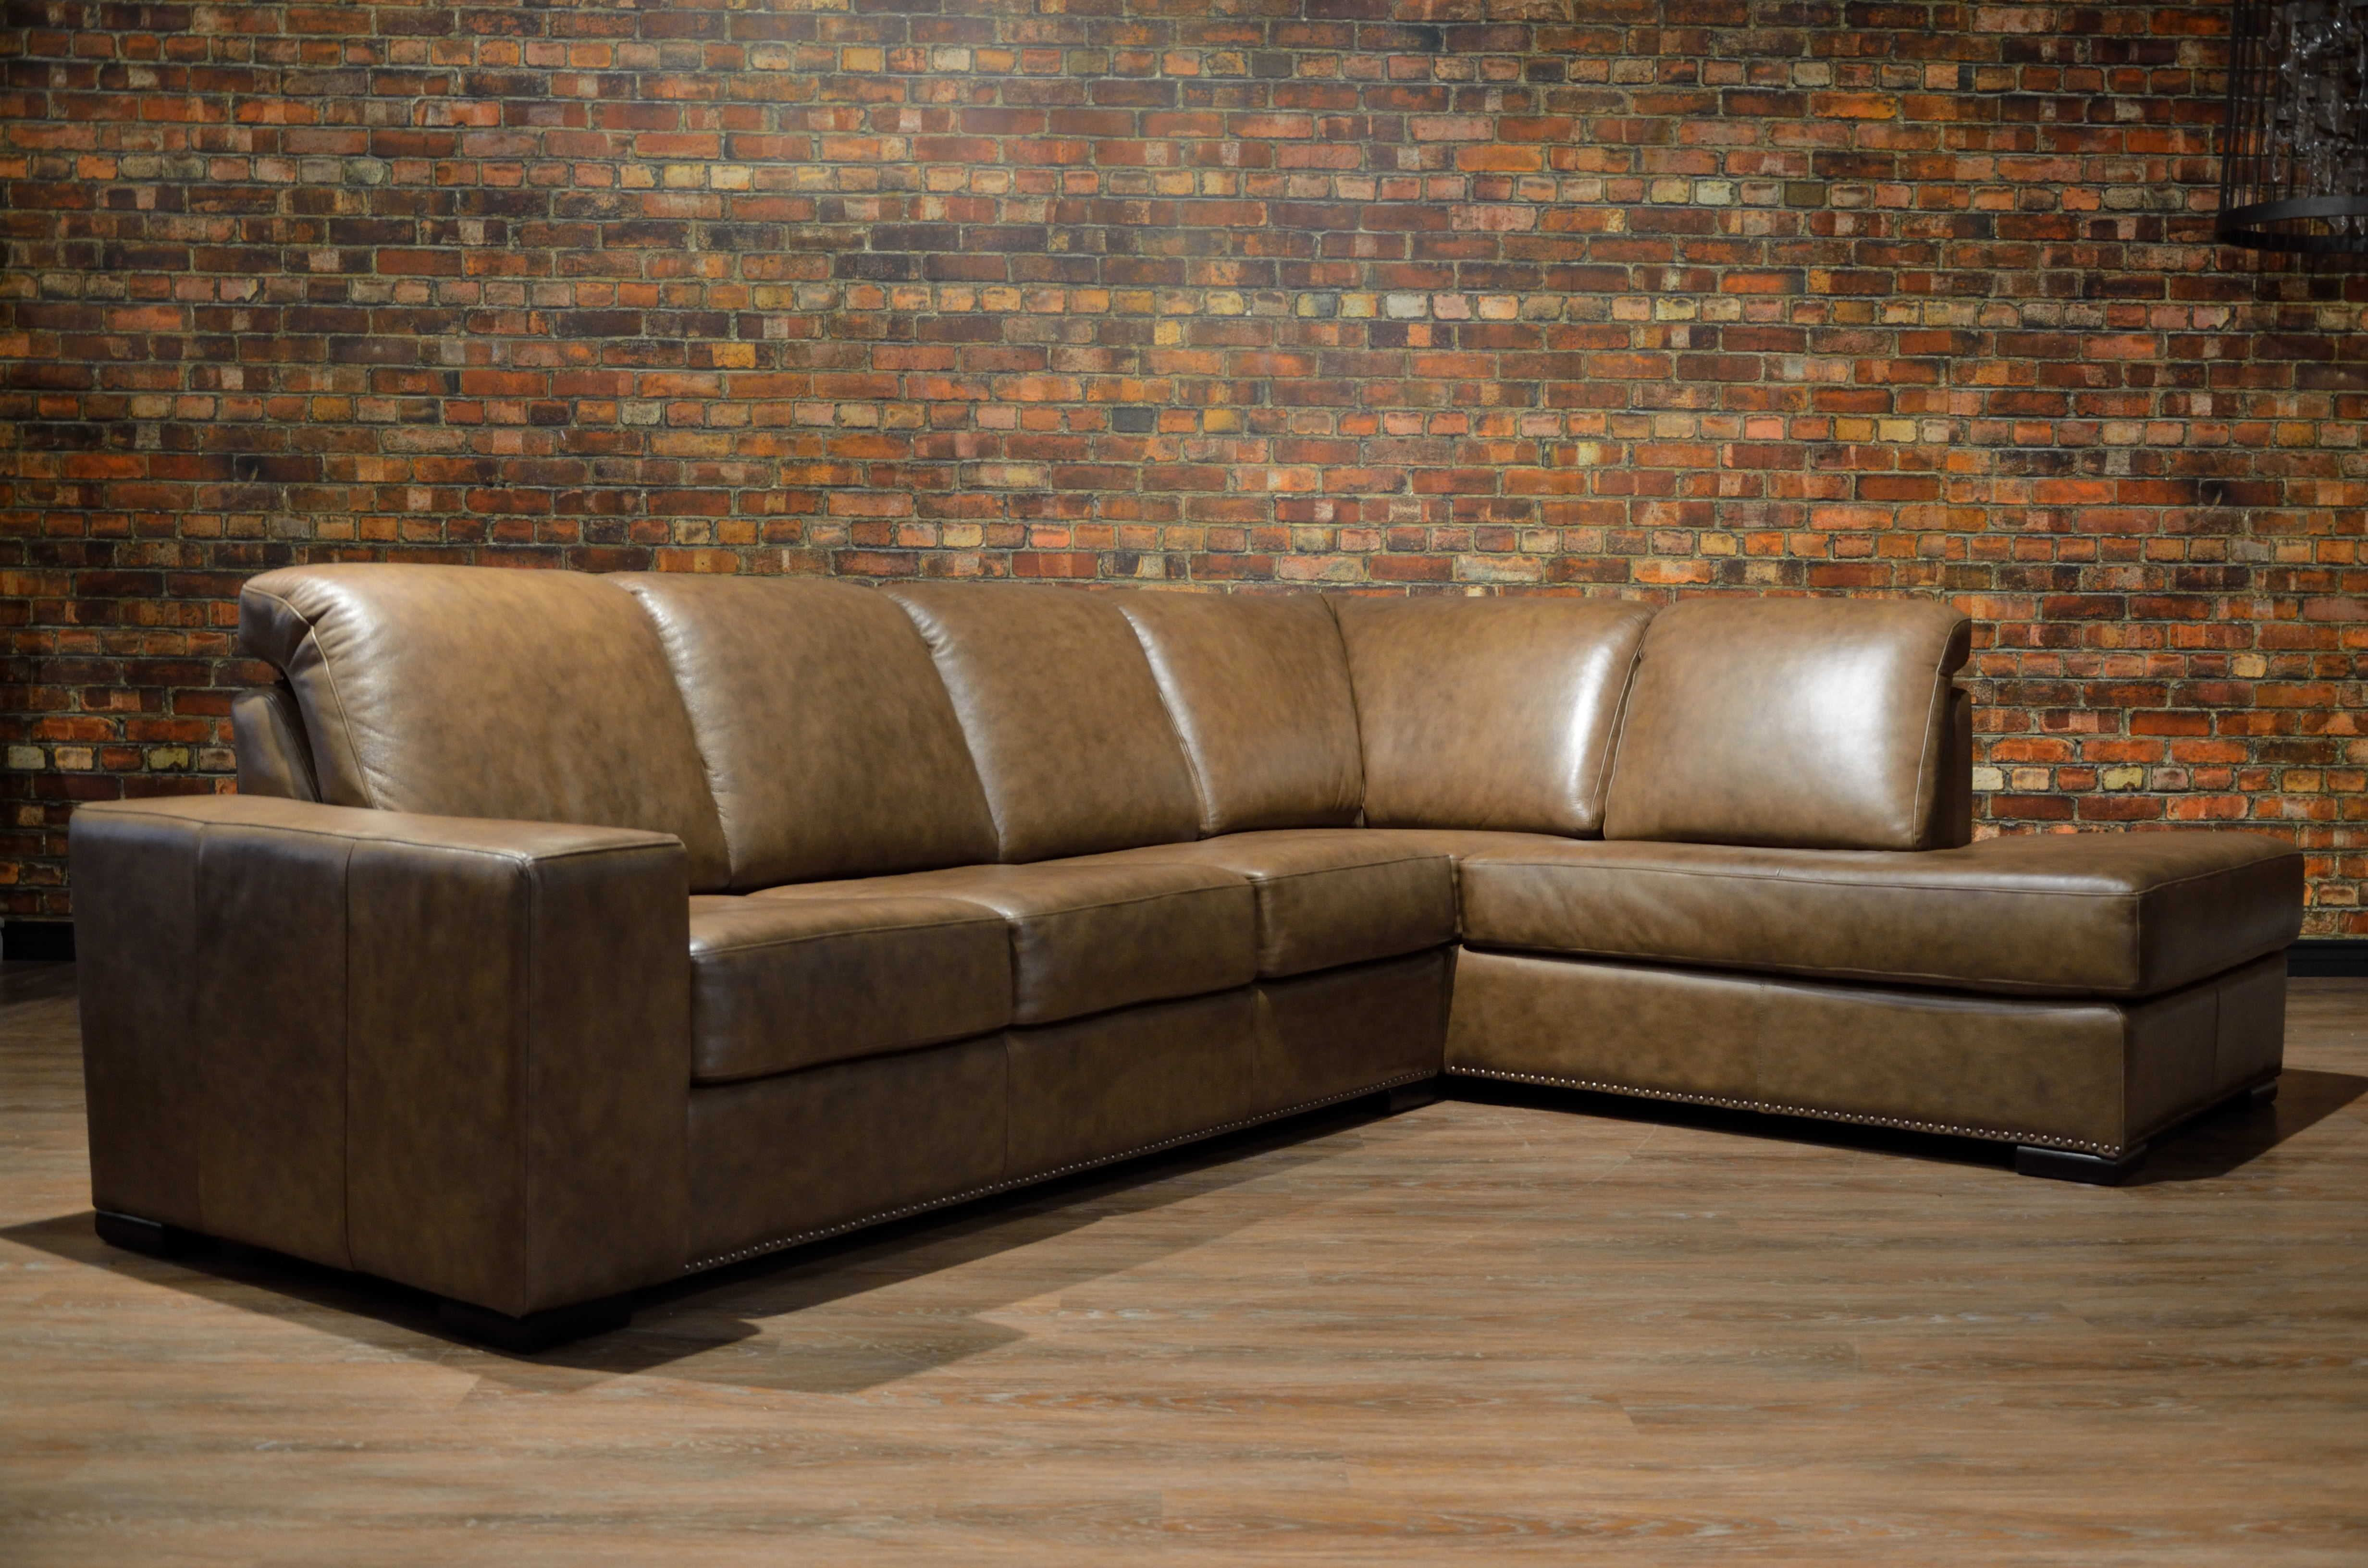 Cool sectional couches for sale with wooden legs and laminate flooring for home interior ideas with cheap sectional couches for sale